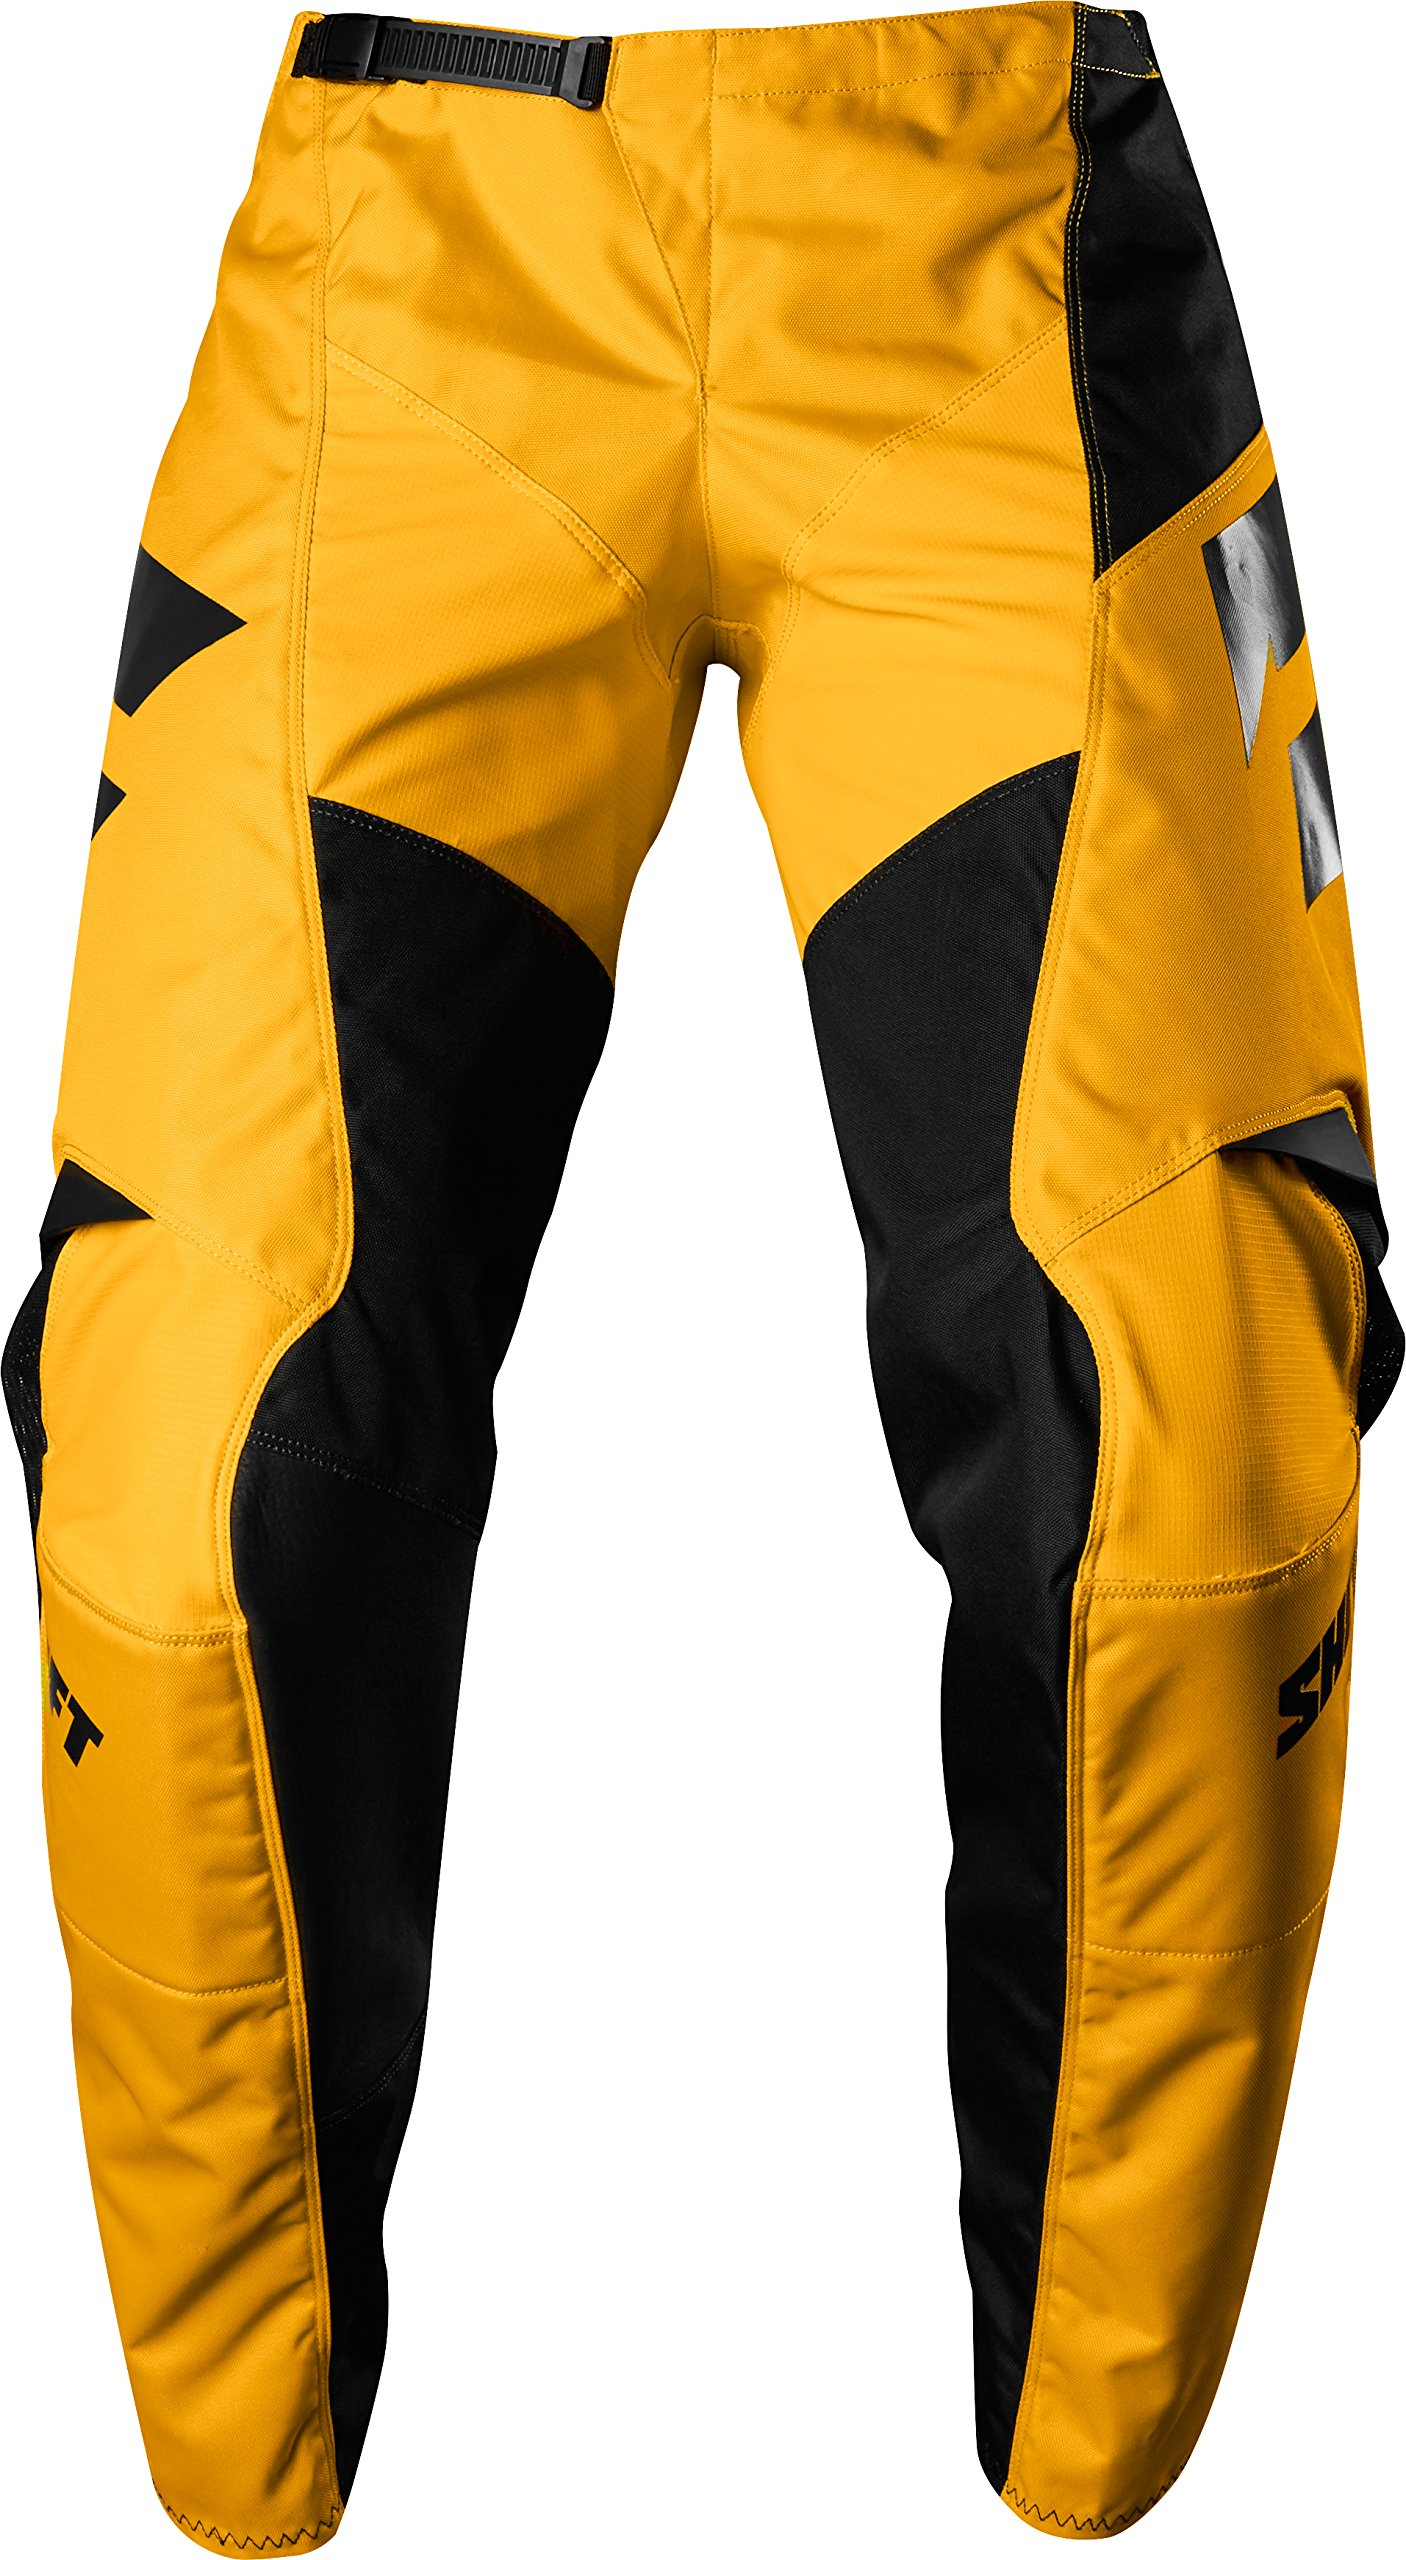 Shift MX - White Label Ninety Seven Yellow Jersey/ Pant Combo - Size LARGE/ 32W